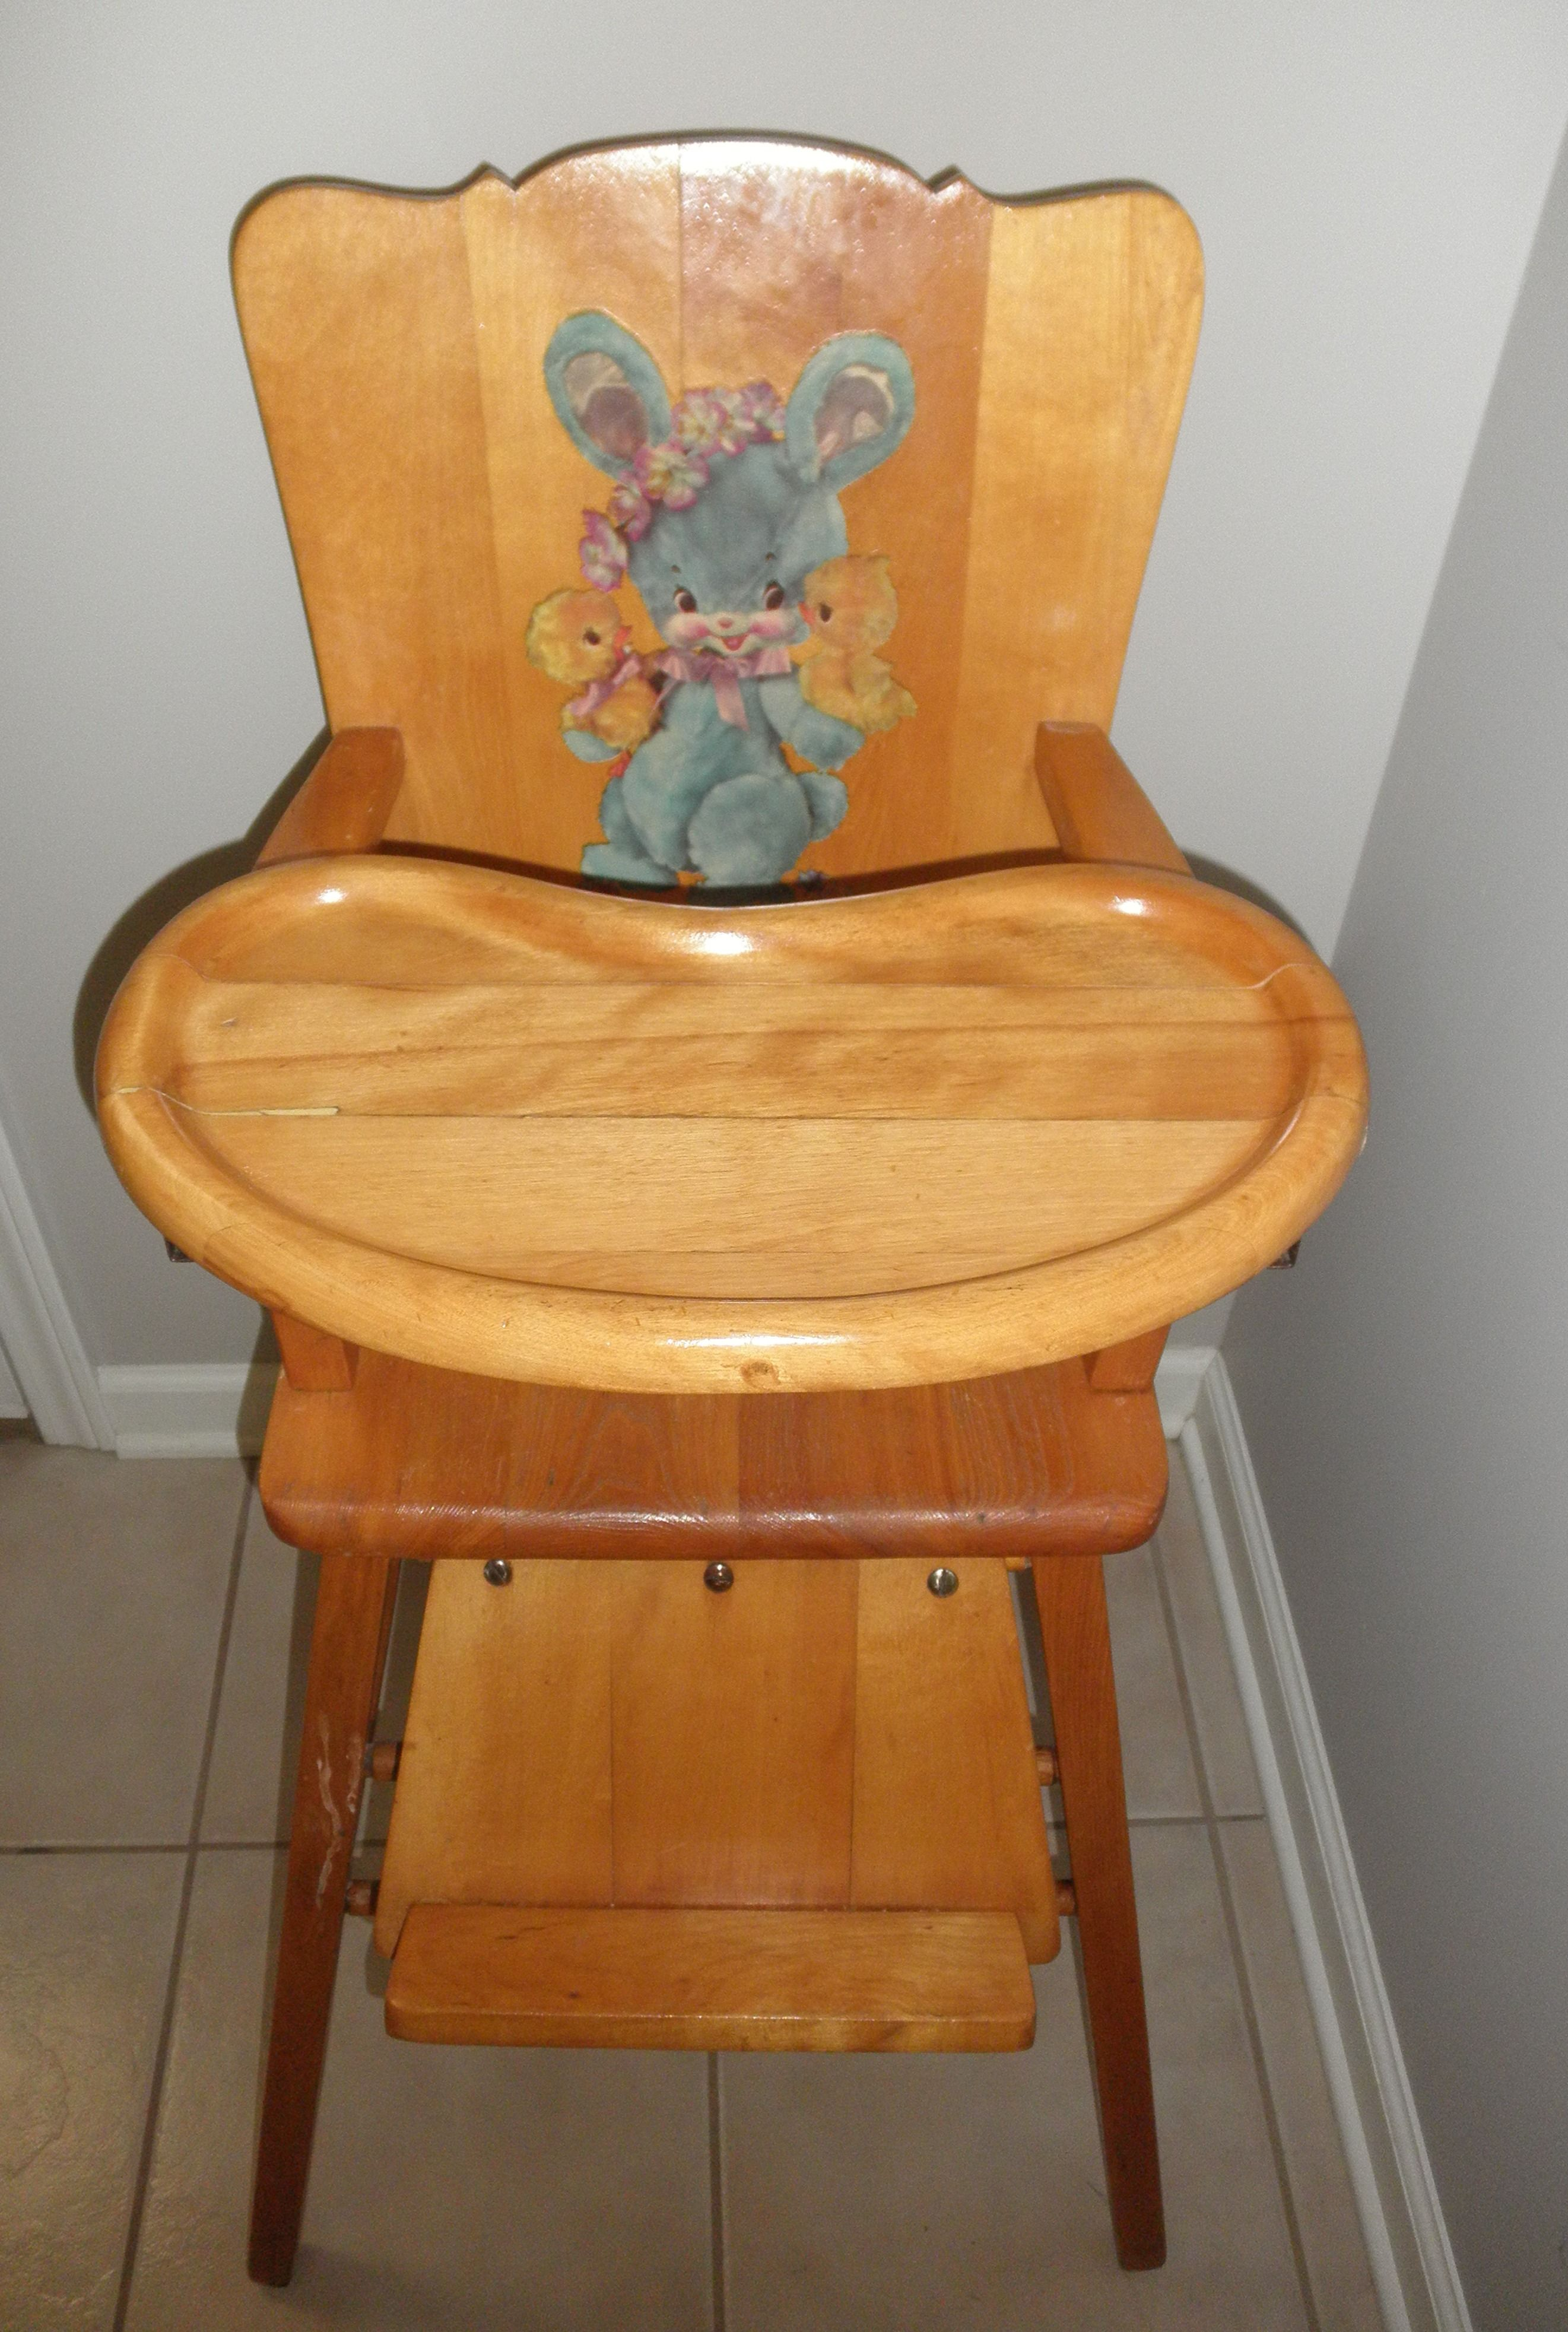 Antique High Chair 1948 Vintage High Chairs Baby Nursery